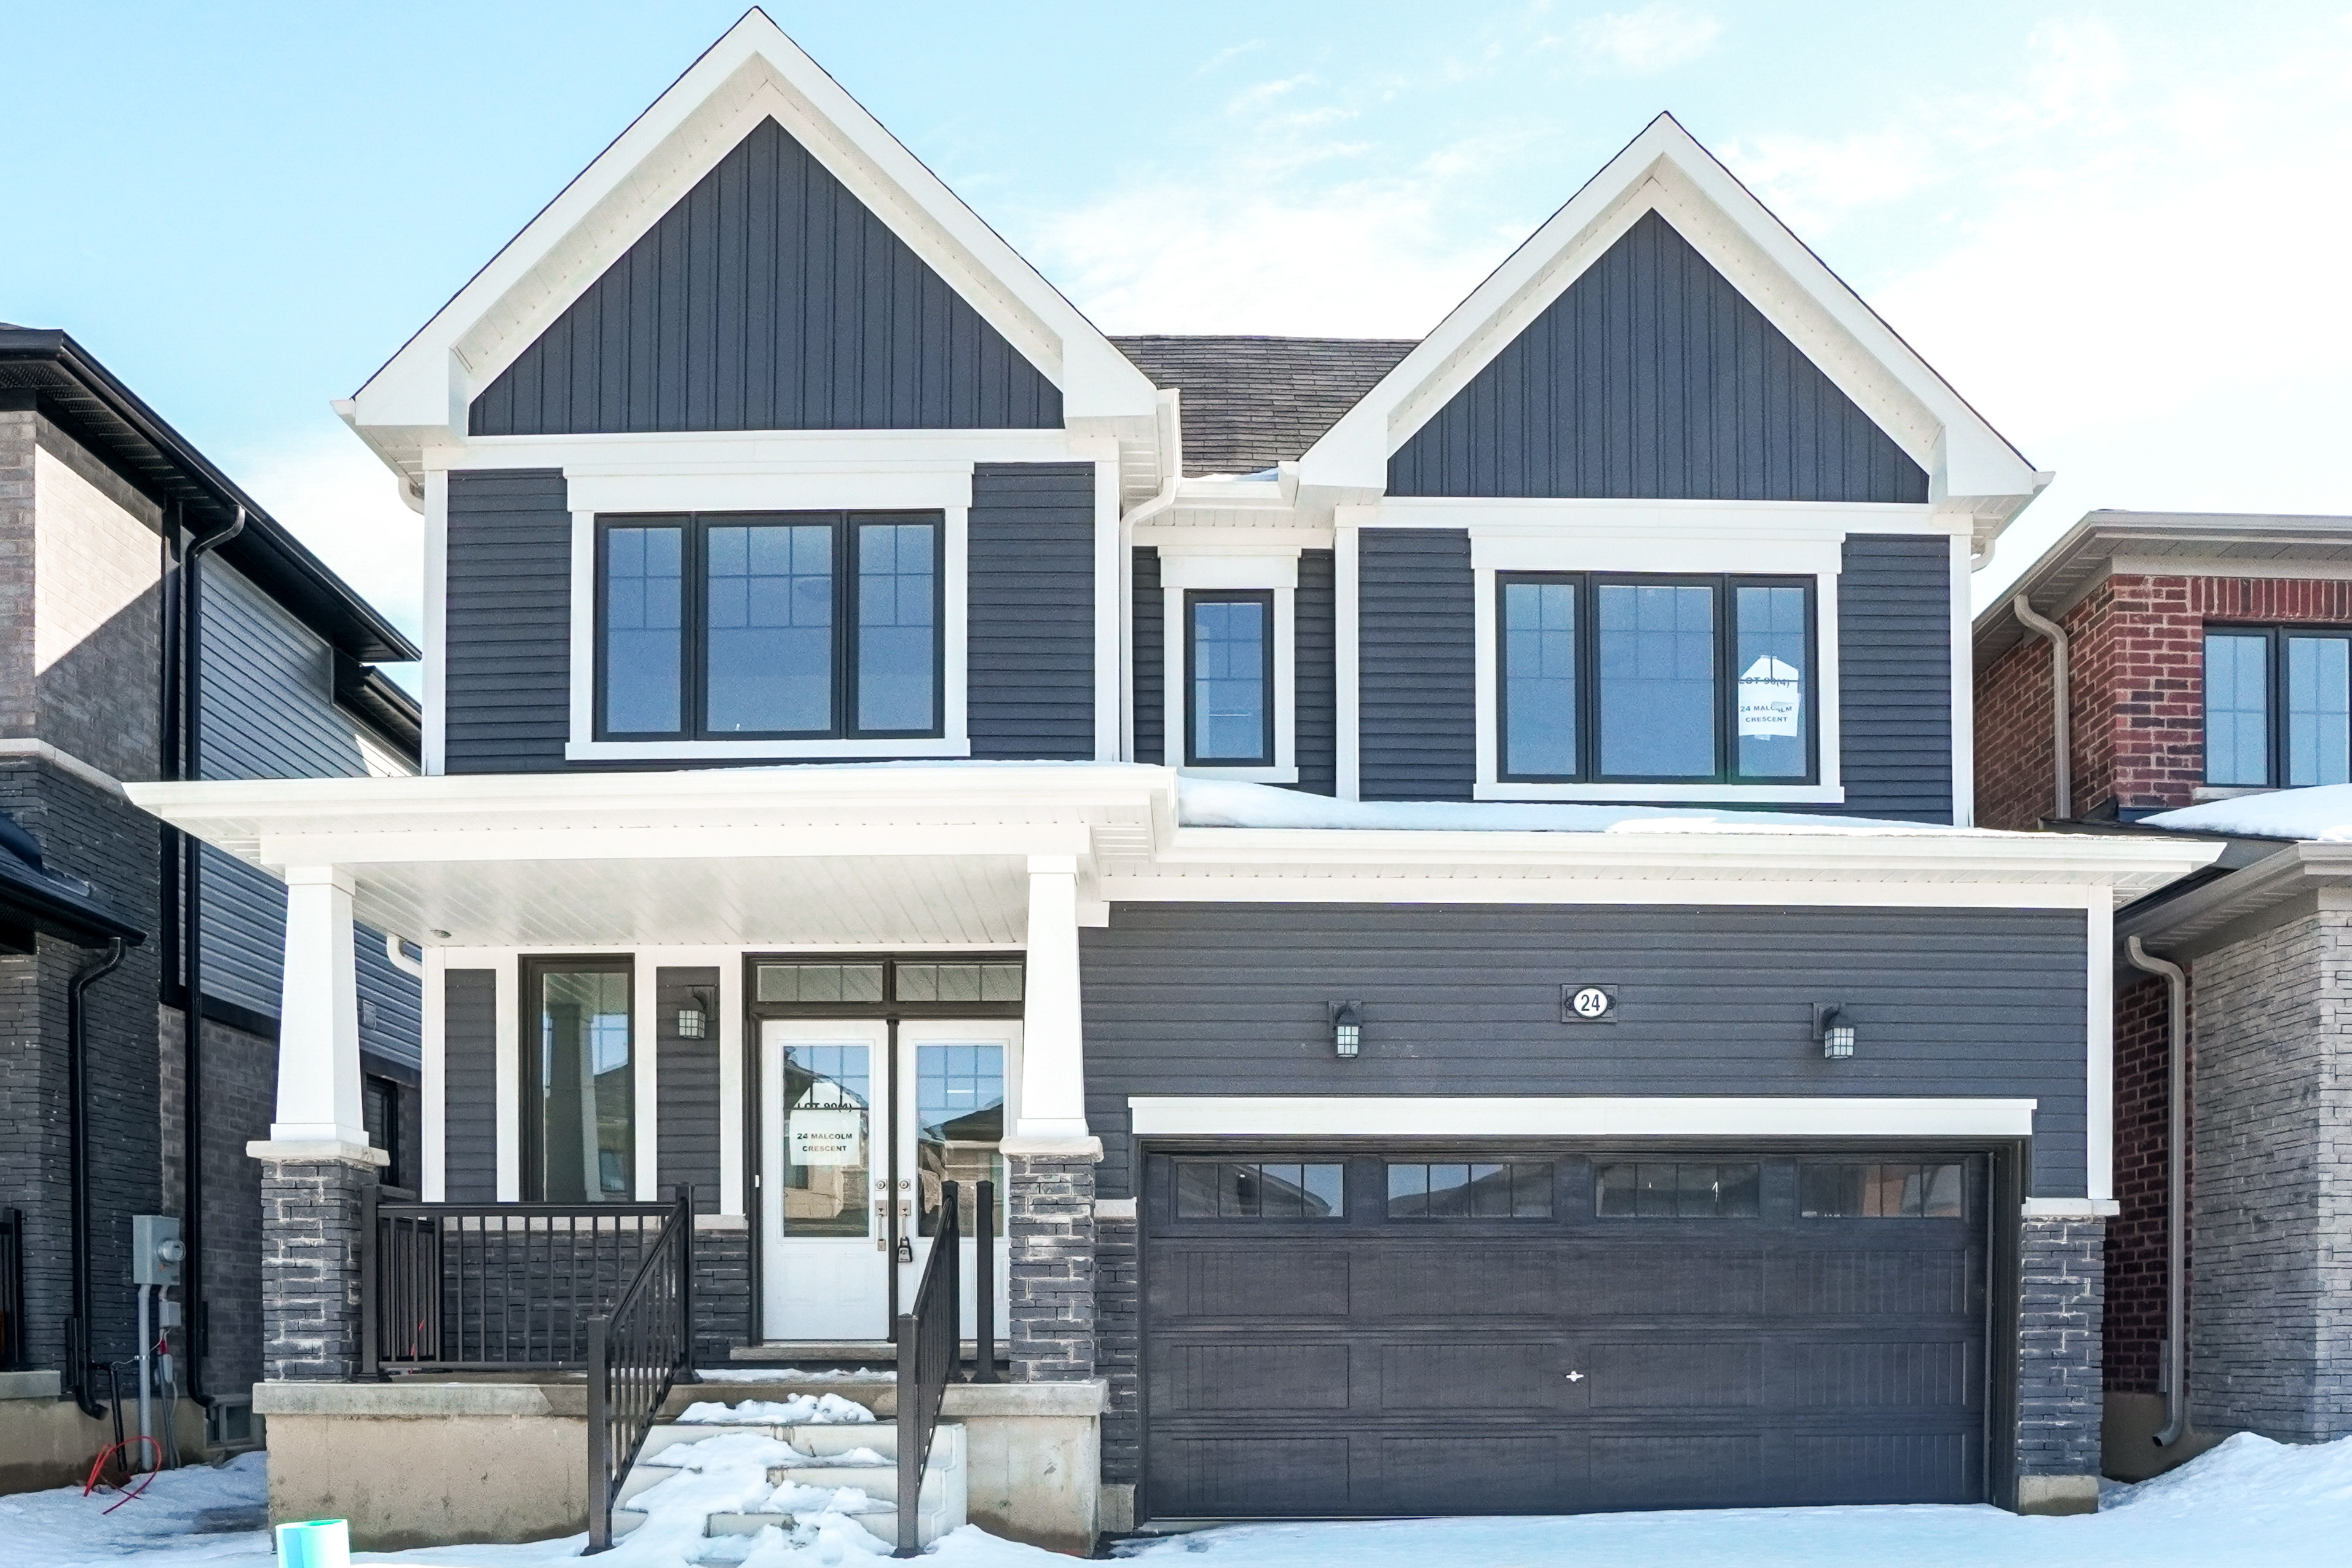 Off Market Opportunity! Call Ameil Gill 416-884-1359